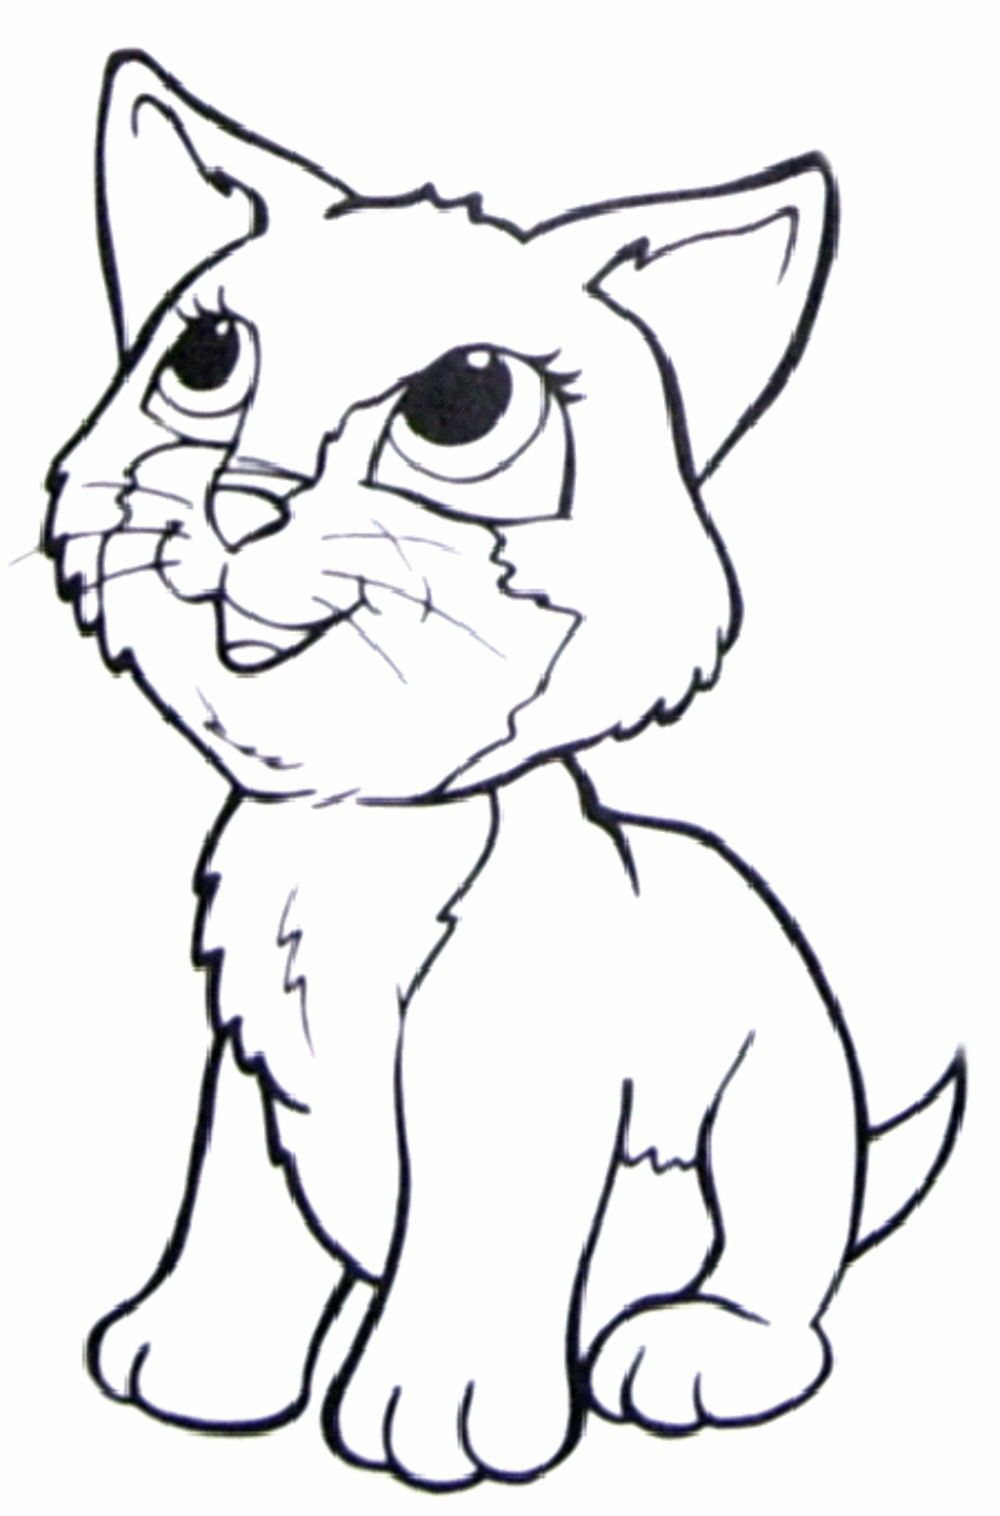 Cat Face Coloring Page Youngandtae Com Cat Coloring Page Cat Coloring Book Kitty Coloring